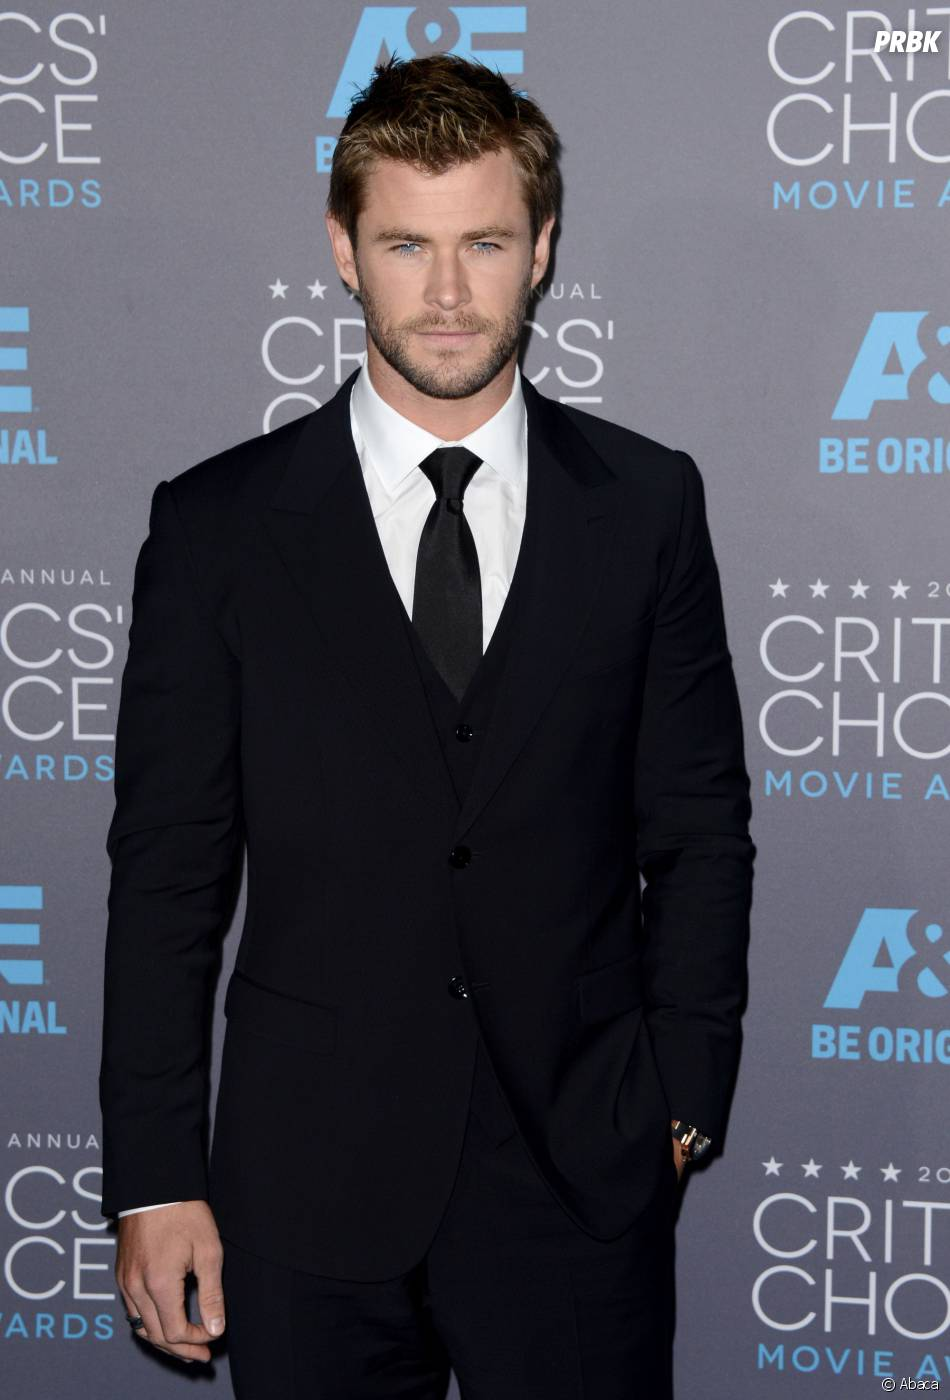 Chris Hemsworth sur le tapis rouge de la 20e cérémonie des Critics' Choice Awards 2015, à Los Angeles le 15 janvier 2015